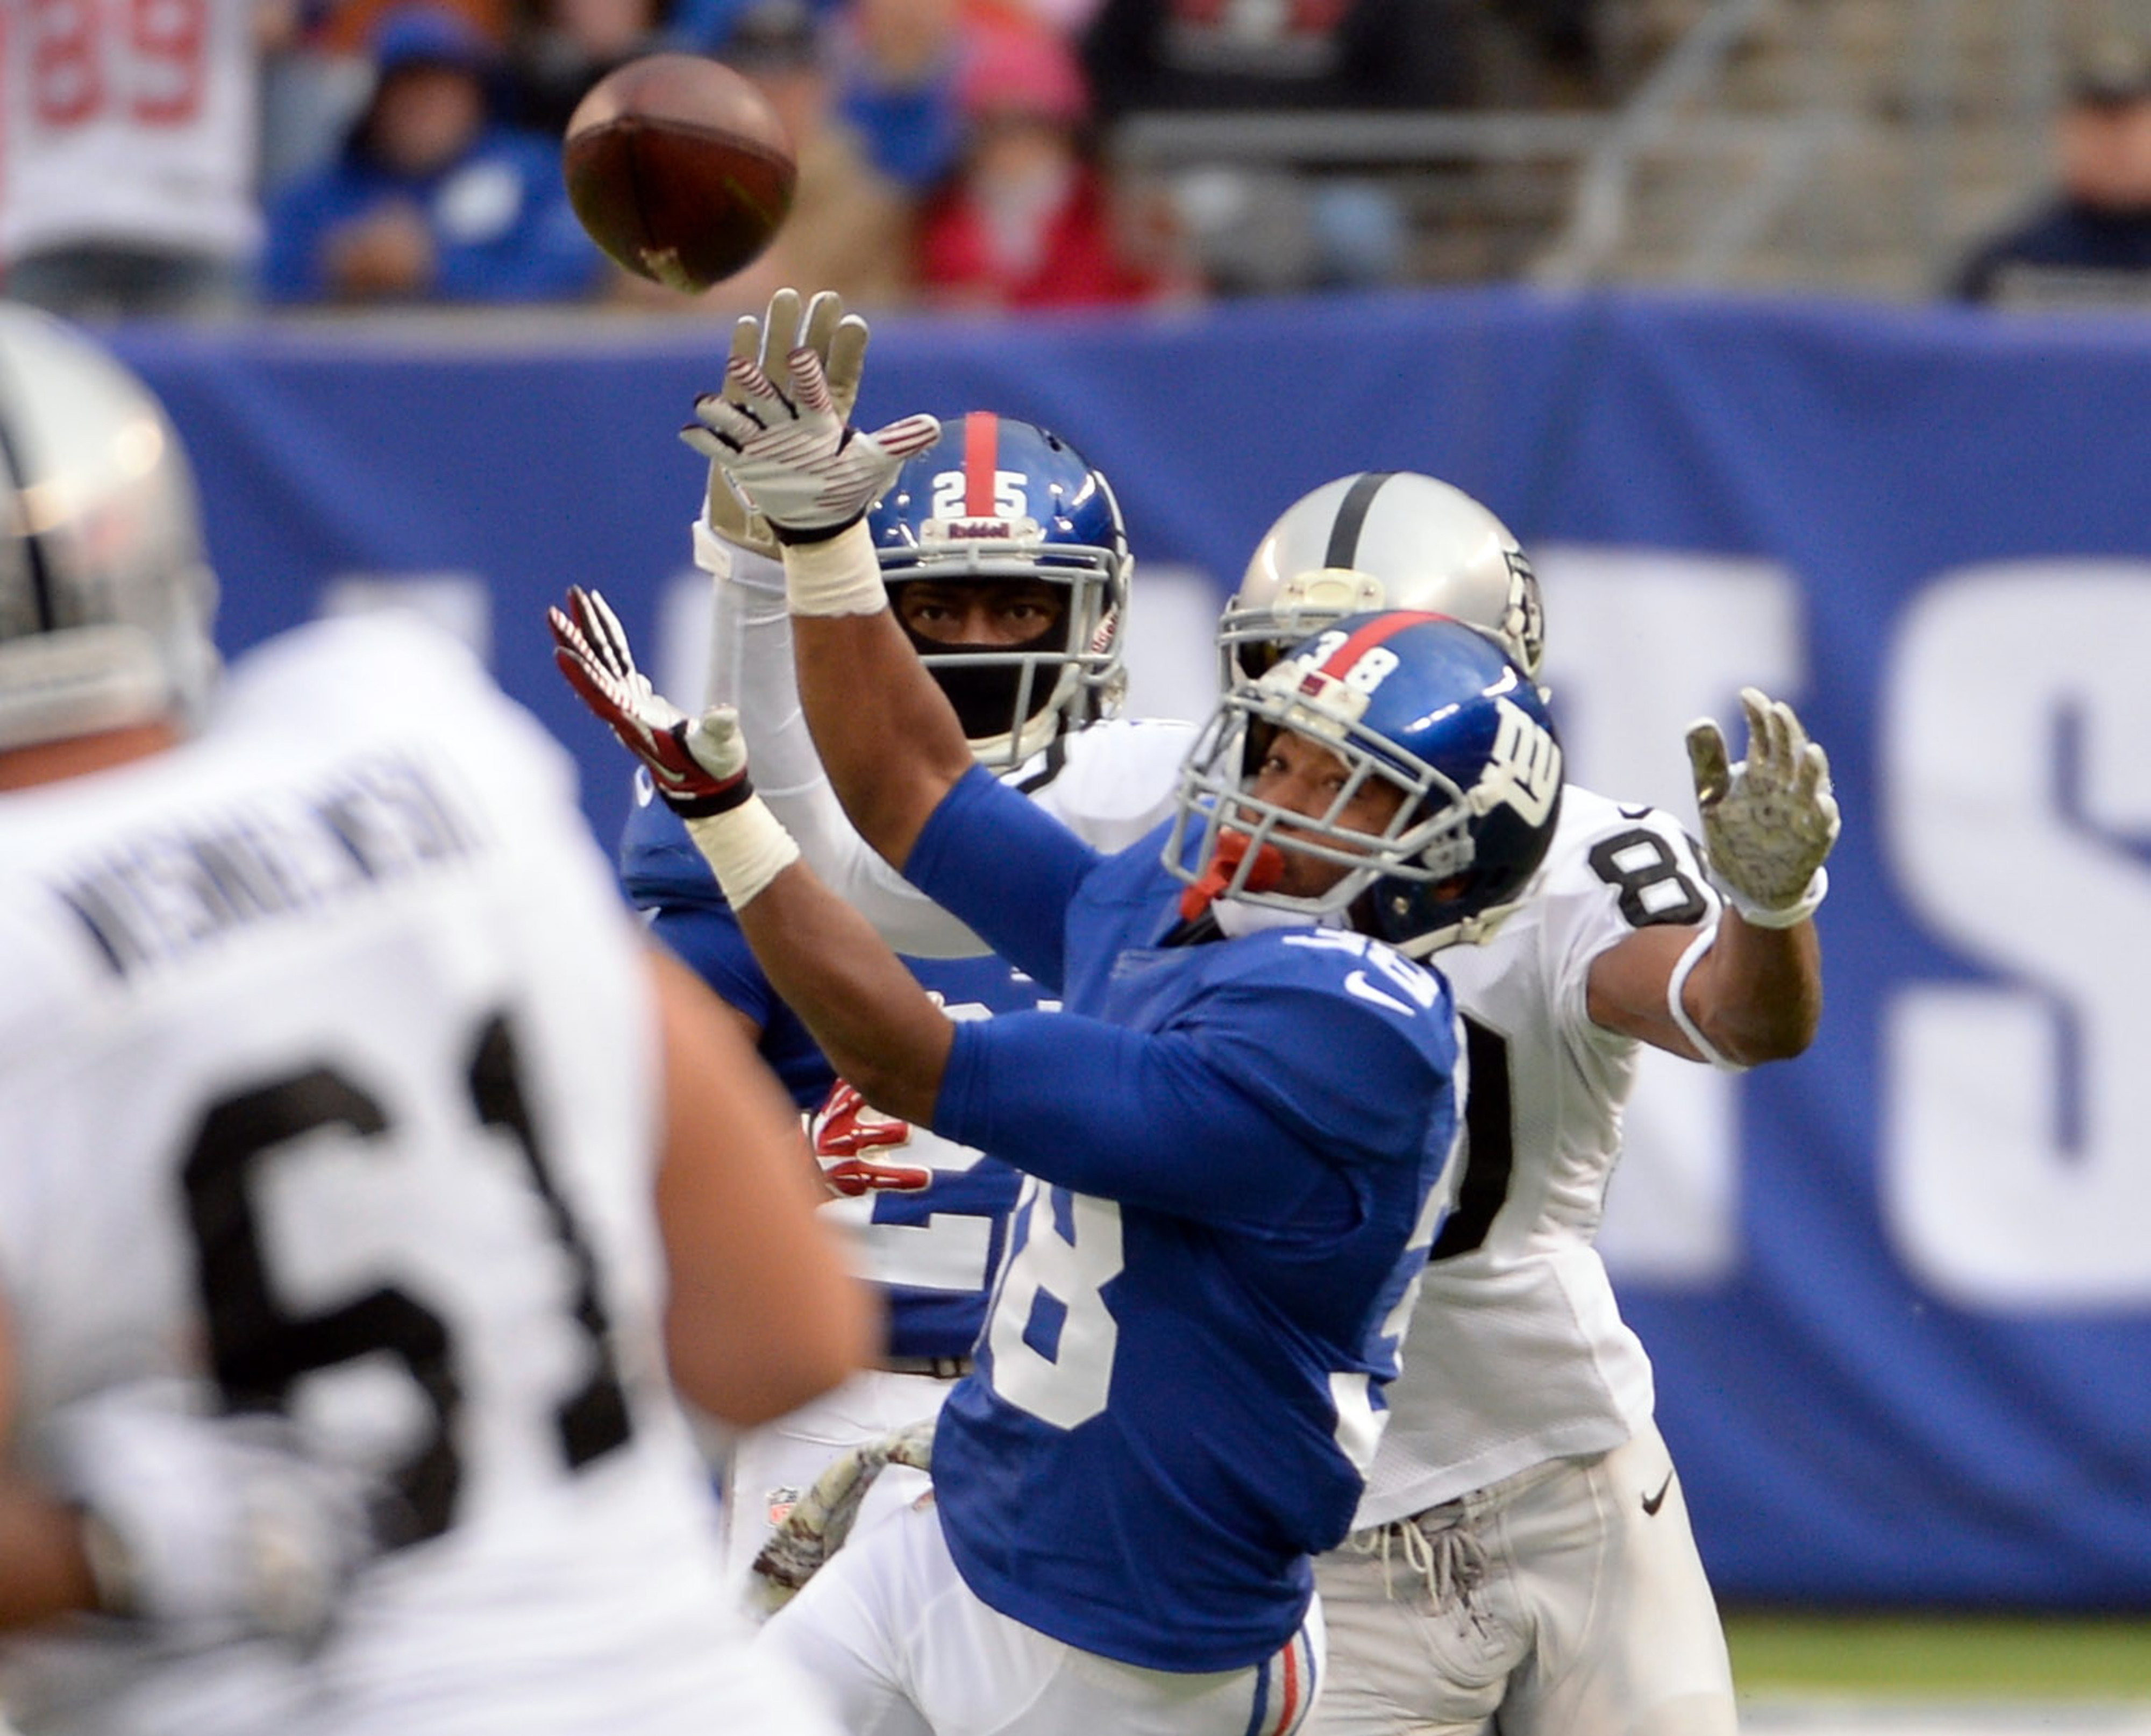 Trumaine McBride breaks up a pass against the Oakland Raiders